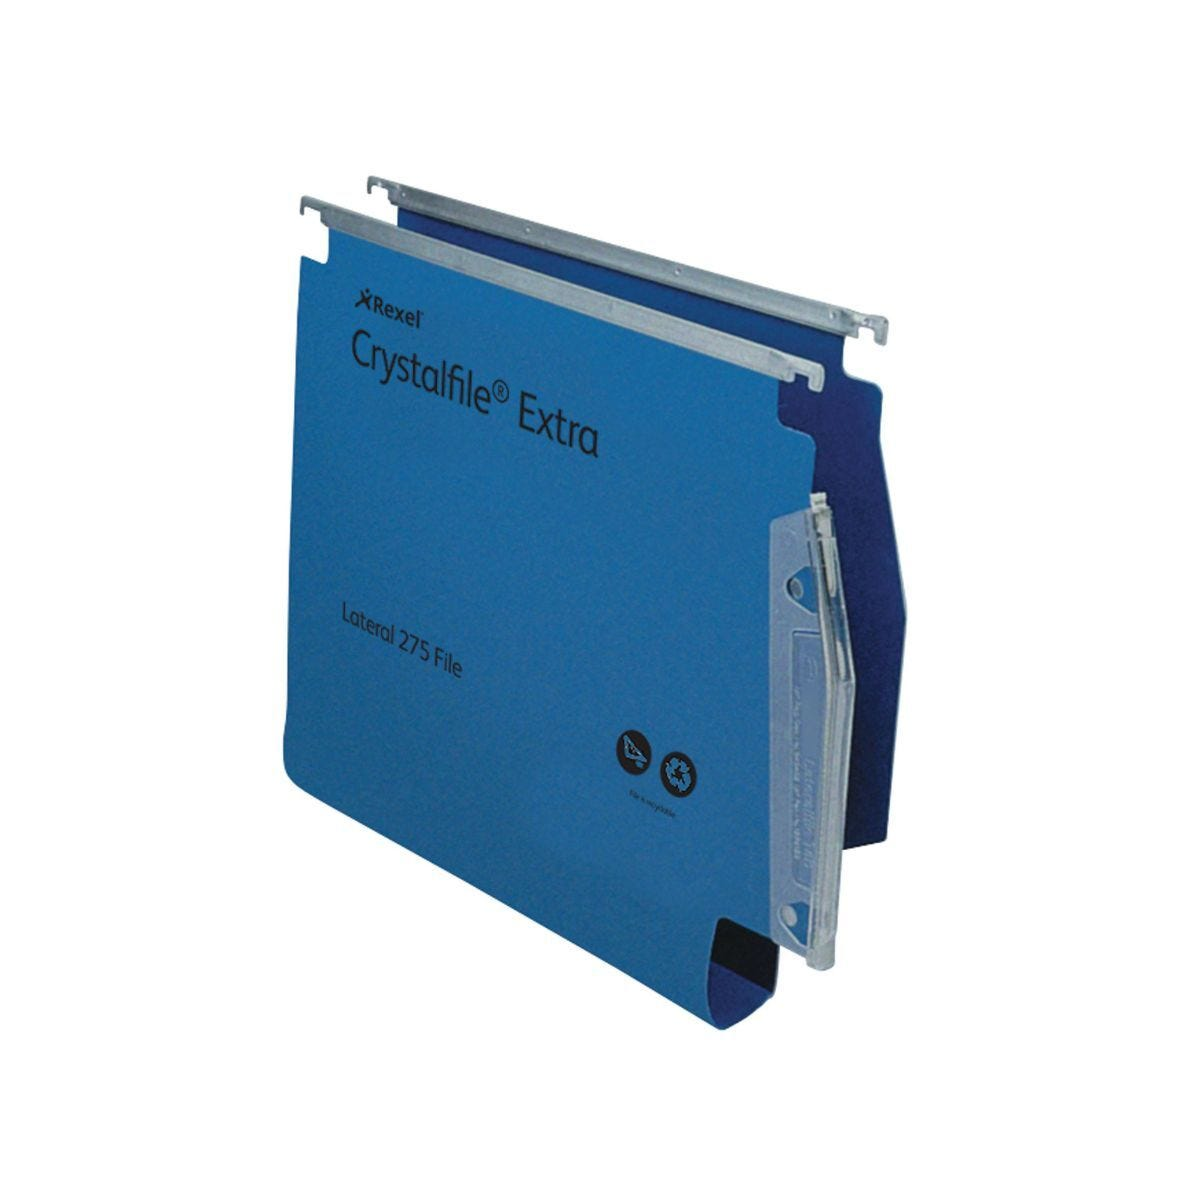 Rexel Crystalfile Extra 275 Lateral Suspension File 30mm Pack of 25 Blue